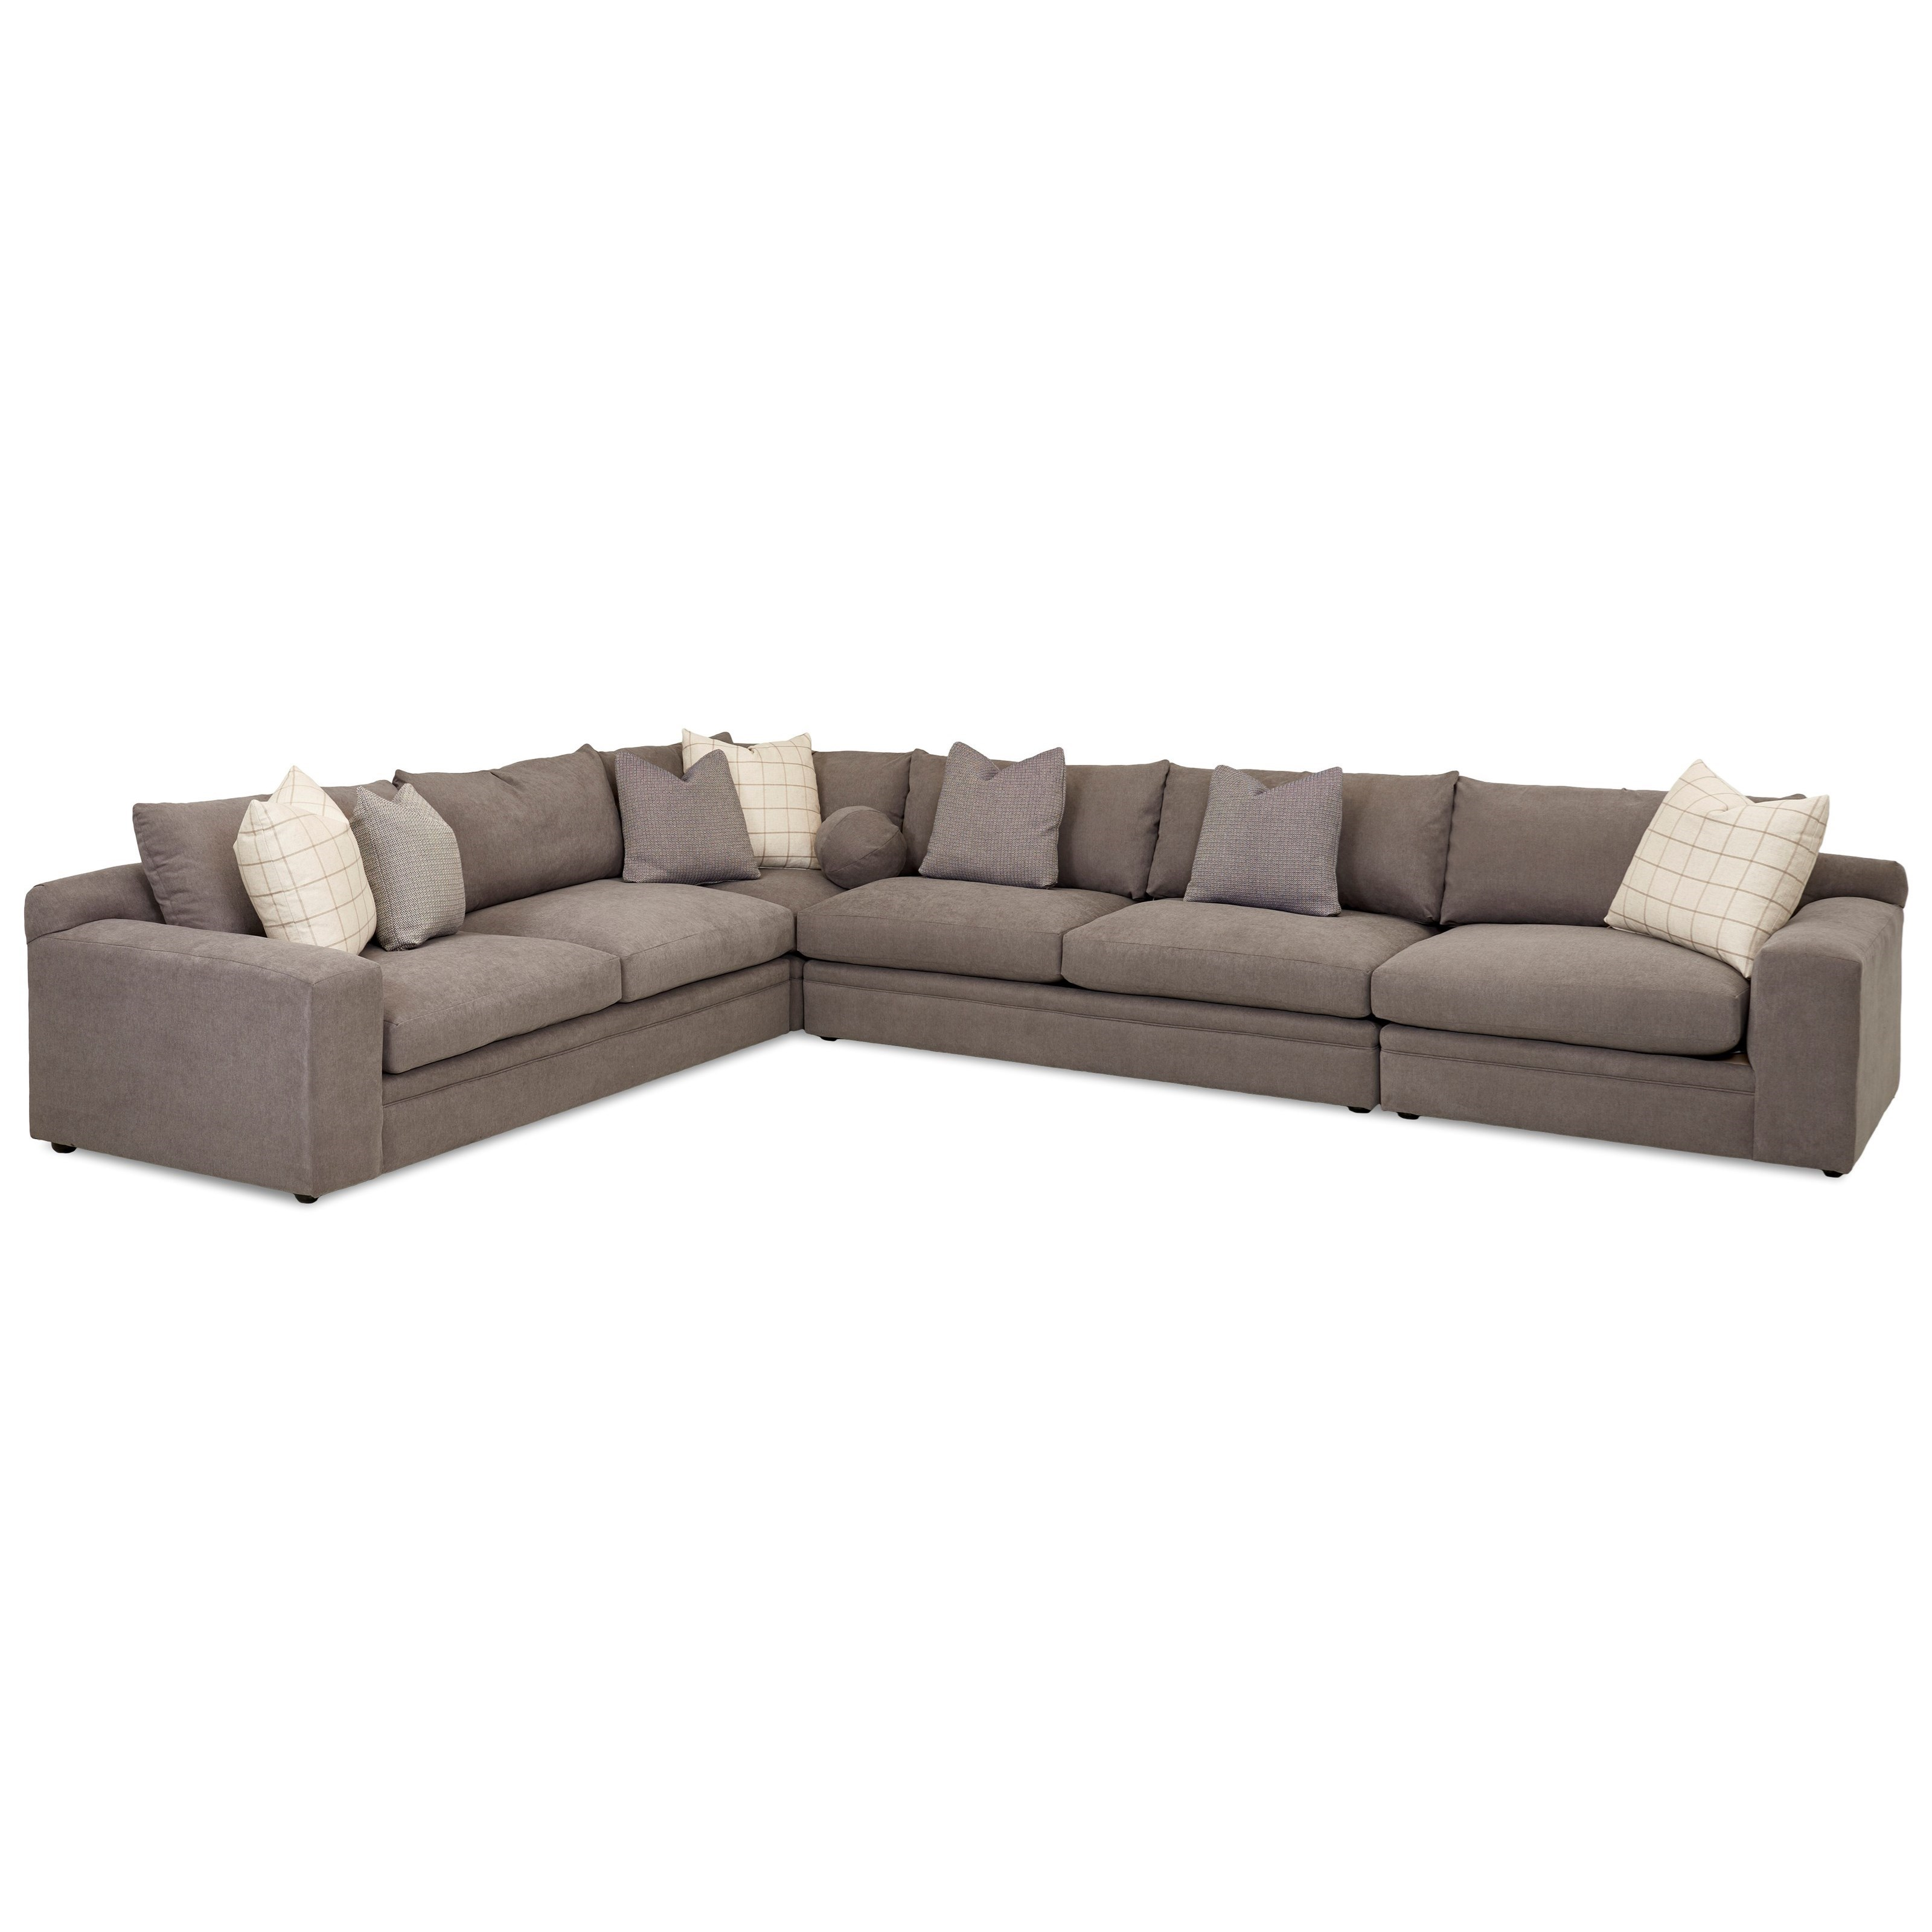 al s chairs and tables how to make a baby shower chair elliston place casa mesa casual four piece sectional sofa with raf mesa4 pc w